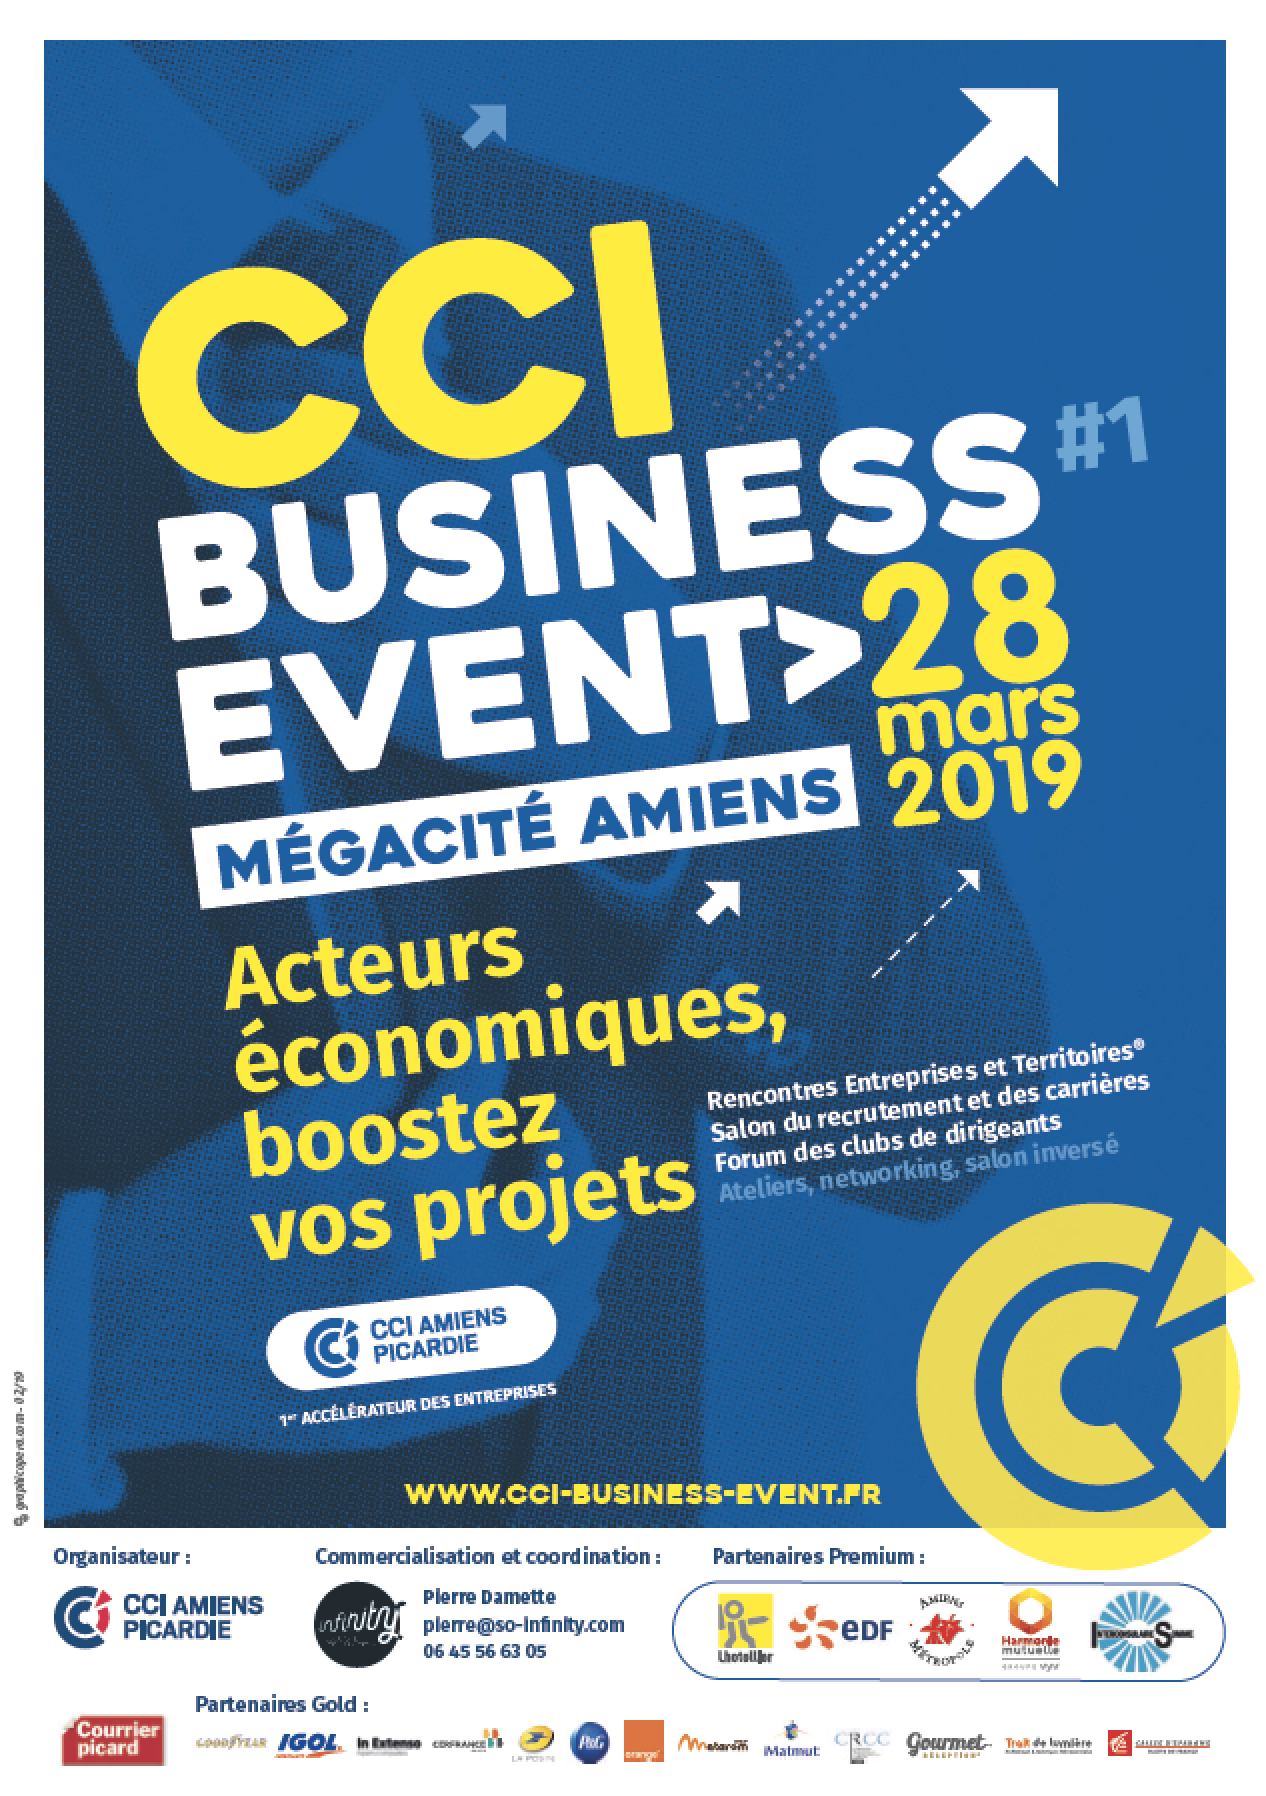 CCI BUSINESS EVENT 2019